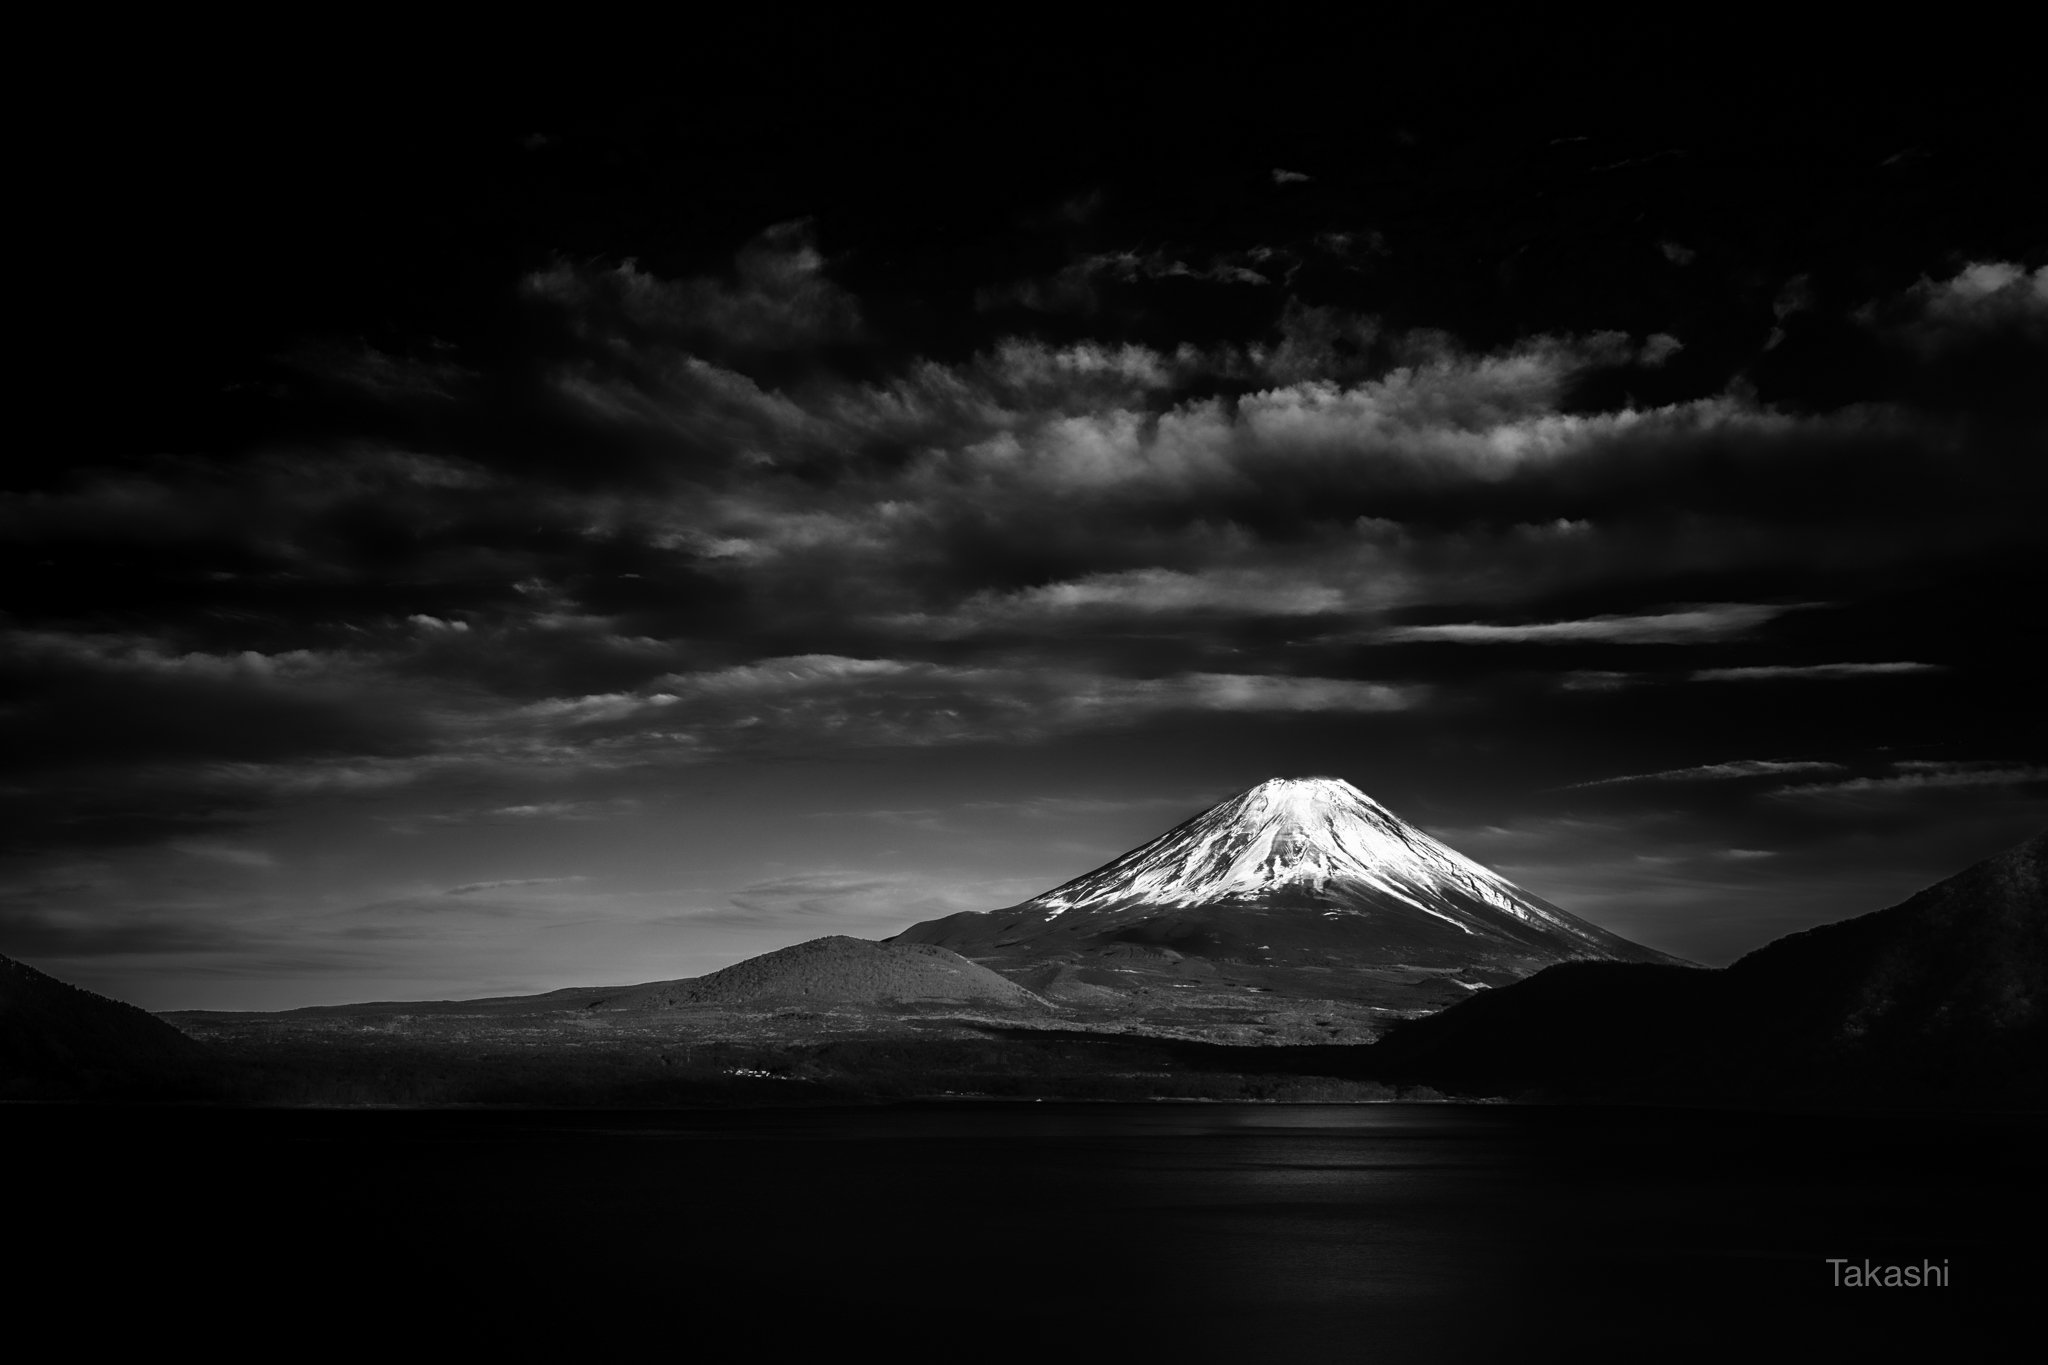 fuji,mountain,japan,snow,lake,water,clouds, Takashi